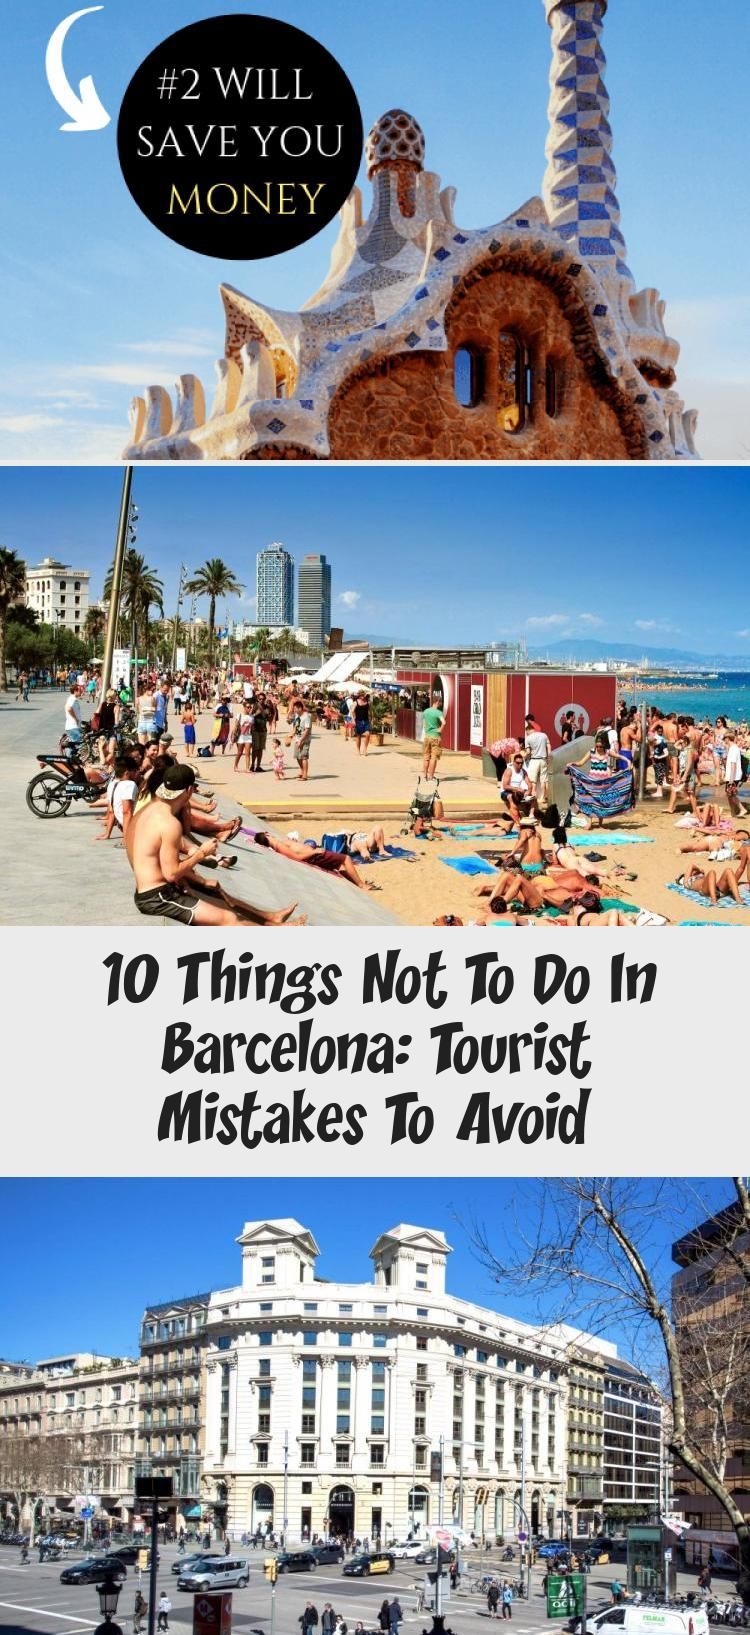 10 Things Not To Do In Barcelona Tourist Mistakes To Avoid